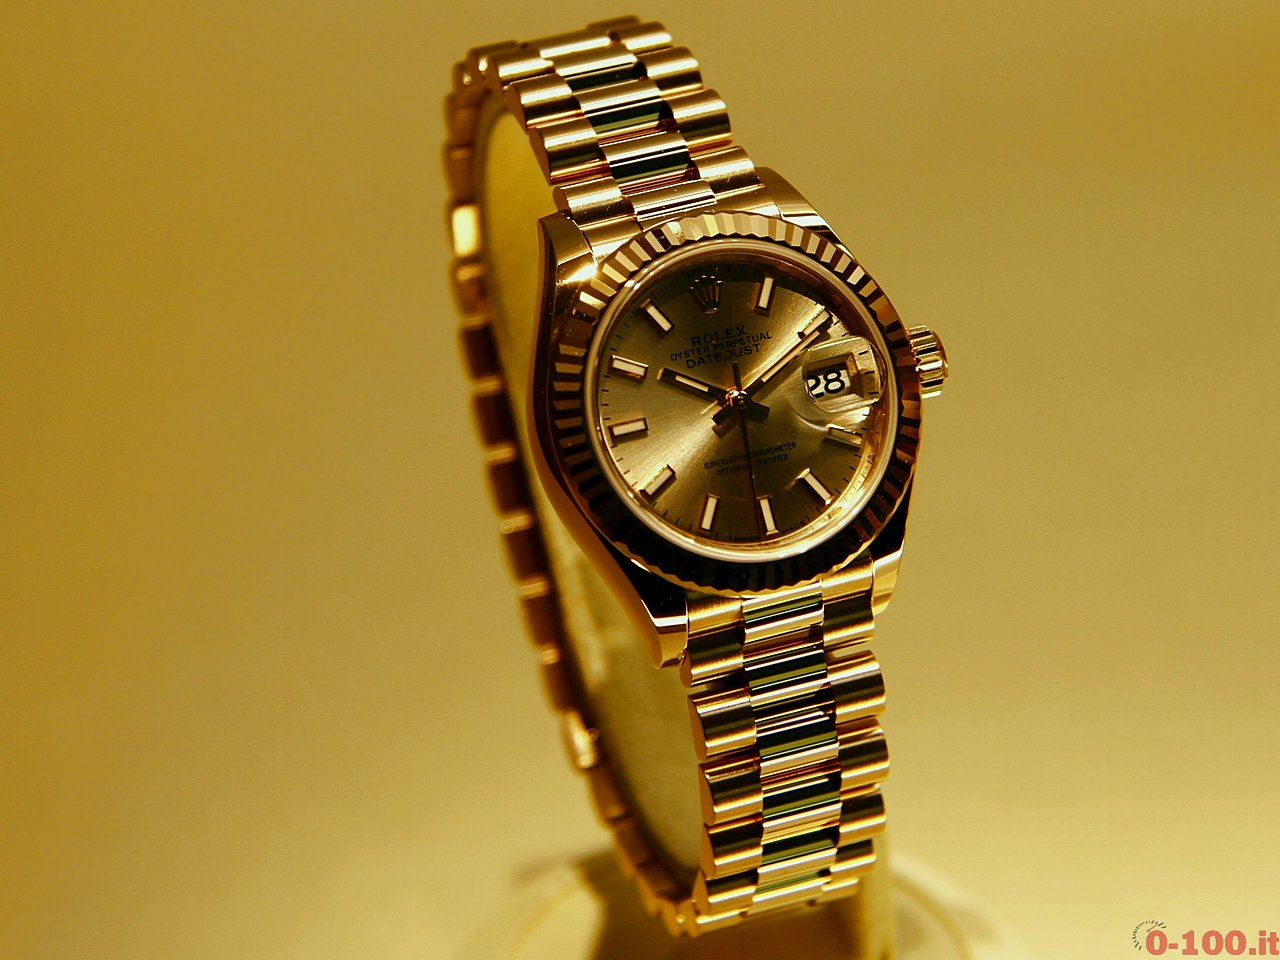 baselworld-2015_rolex-lady-datejust-28-0-100_1